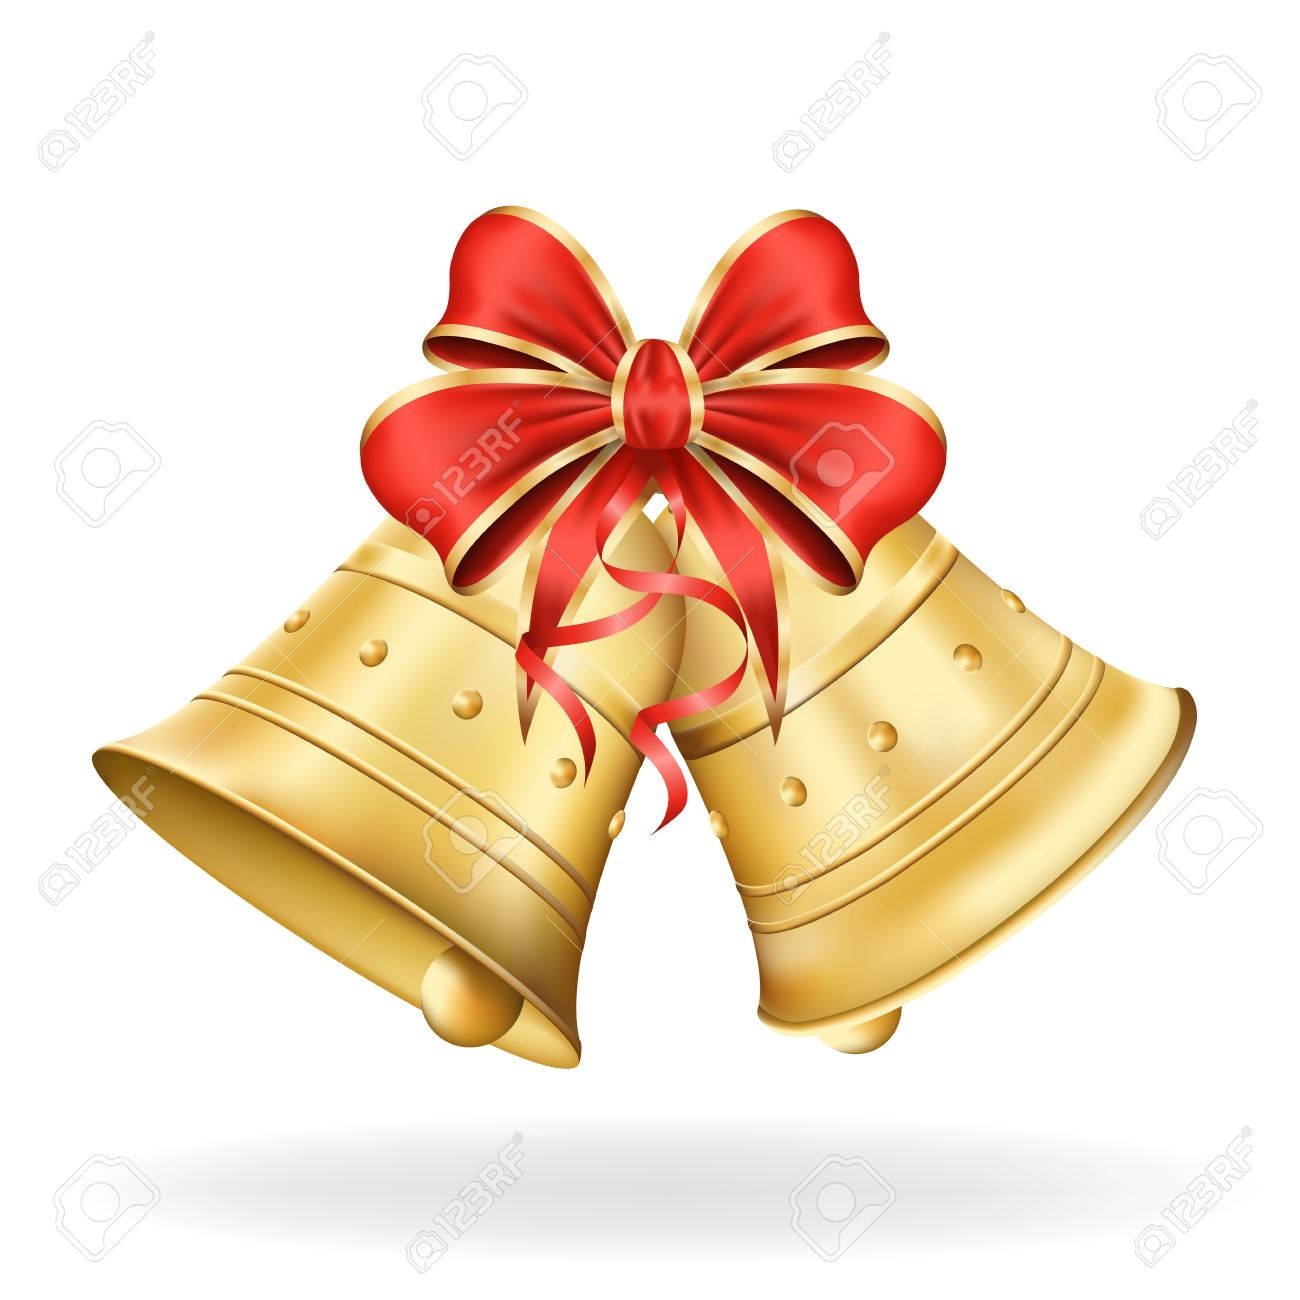 Christmas Bells Images.Christmas Bells With Red Bow On White Background Xmas Decorations